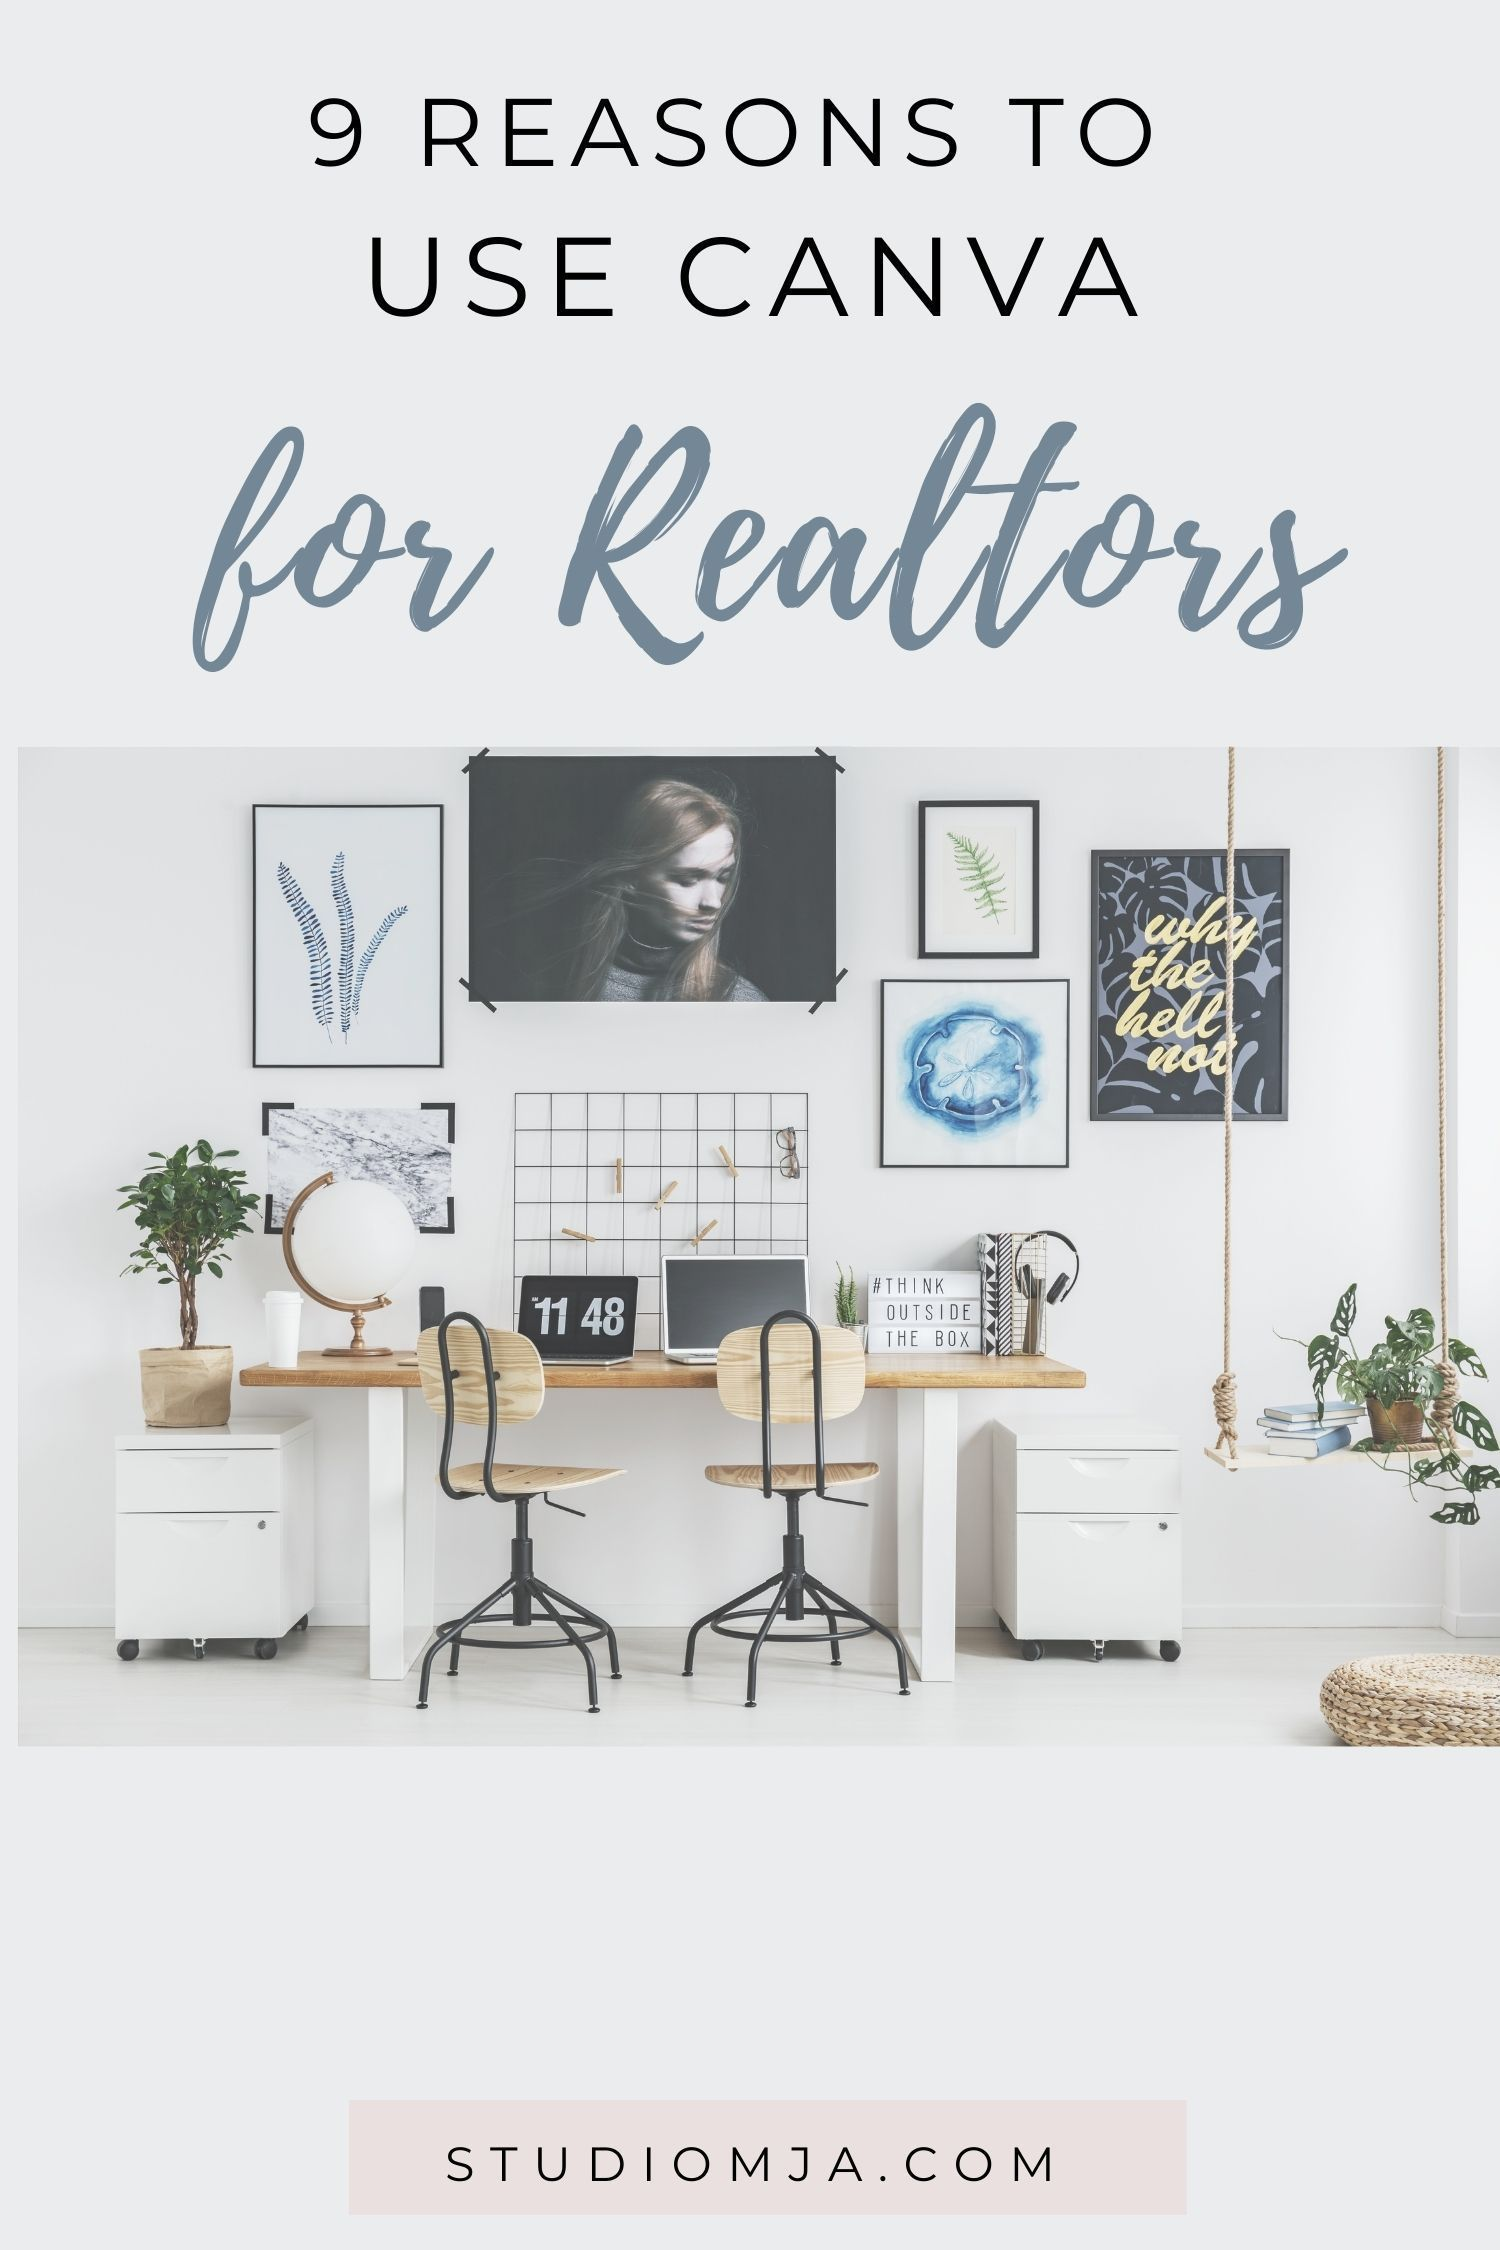 Canva is an amazing tool for everyone - designers and non-designers alike. Realtors can use Canva for all of their marketing materials and scheduling with ease. Learn how in this article. #realestatemarketing #canva #realestatecanva #canvadesign #design #marketing #designer